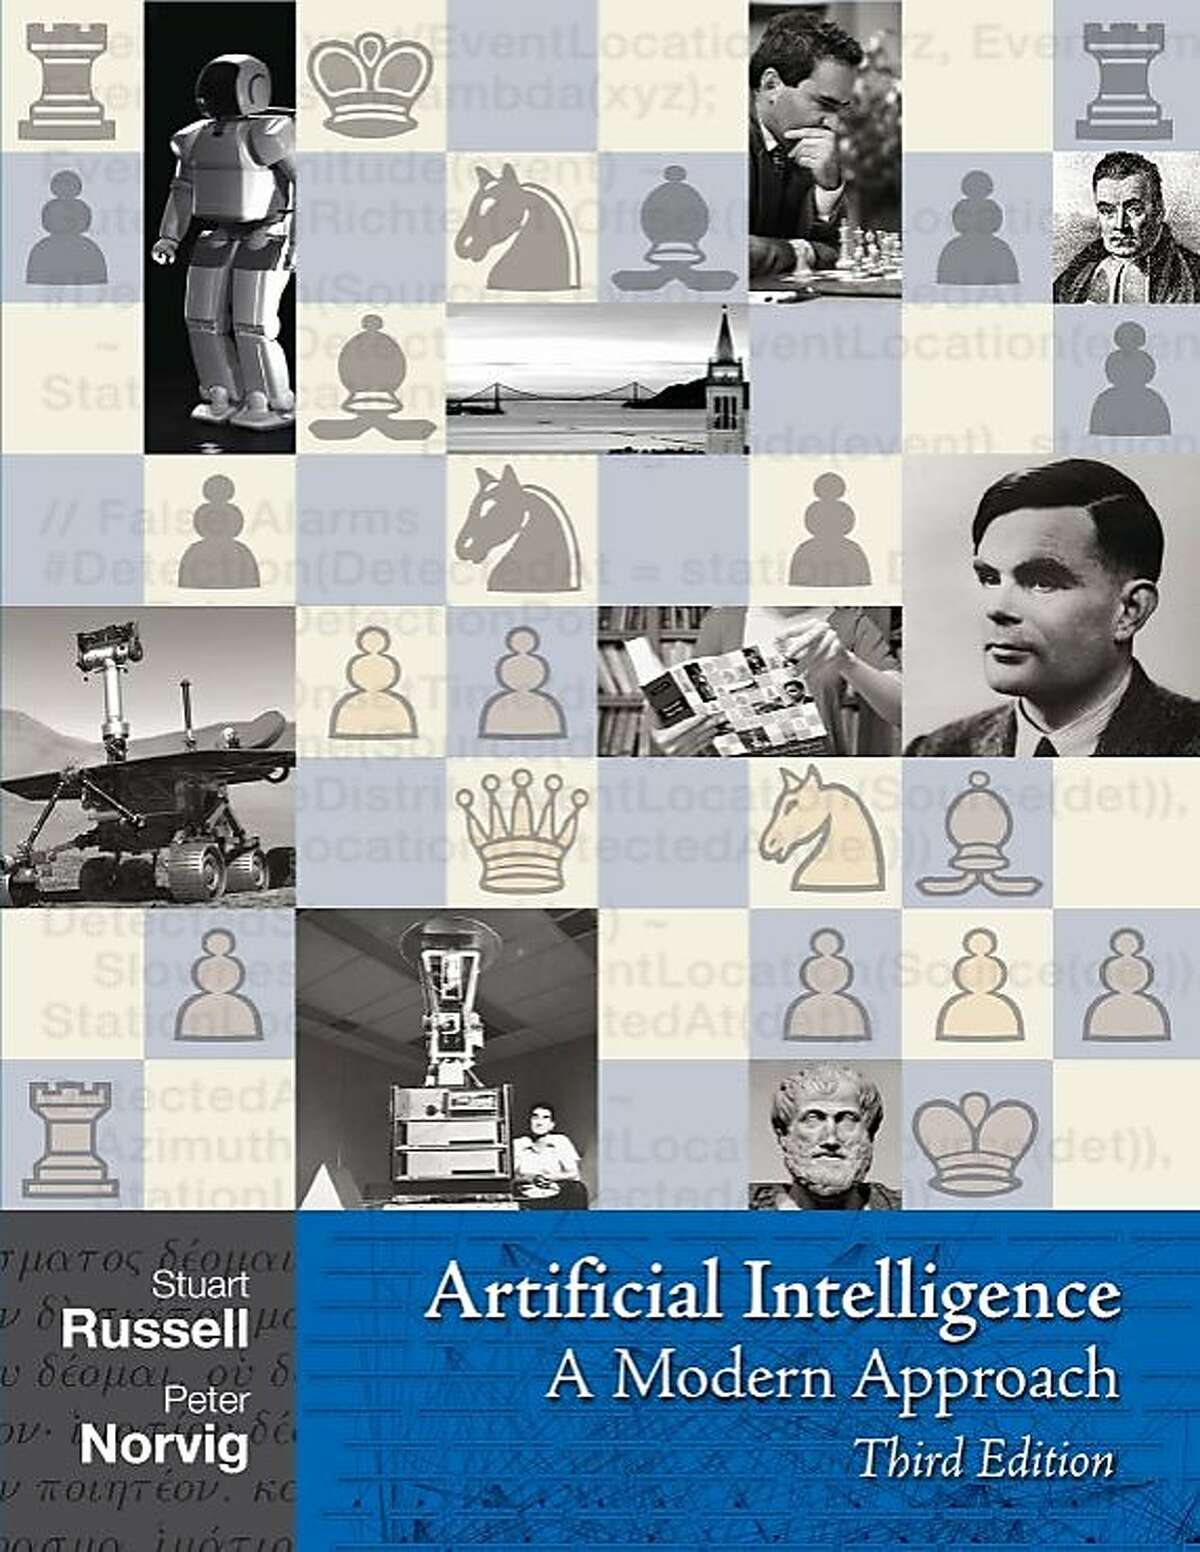 Artificial Intelligence: A Modern Approach (Third edition) by Stuart Russell and Peter Norvig